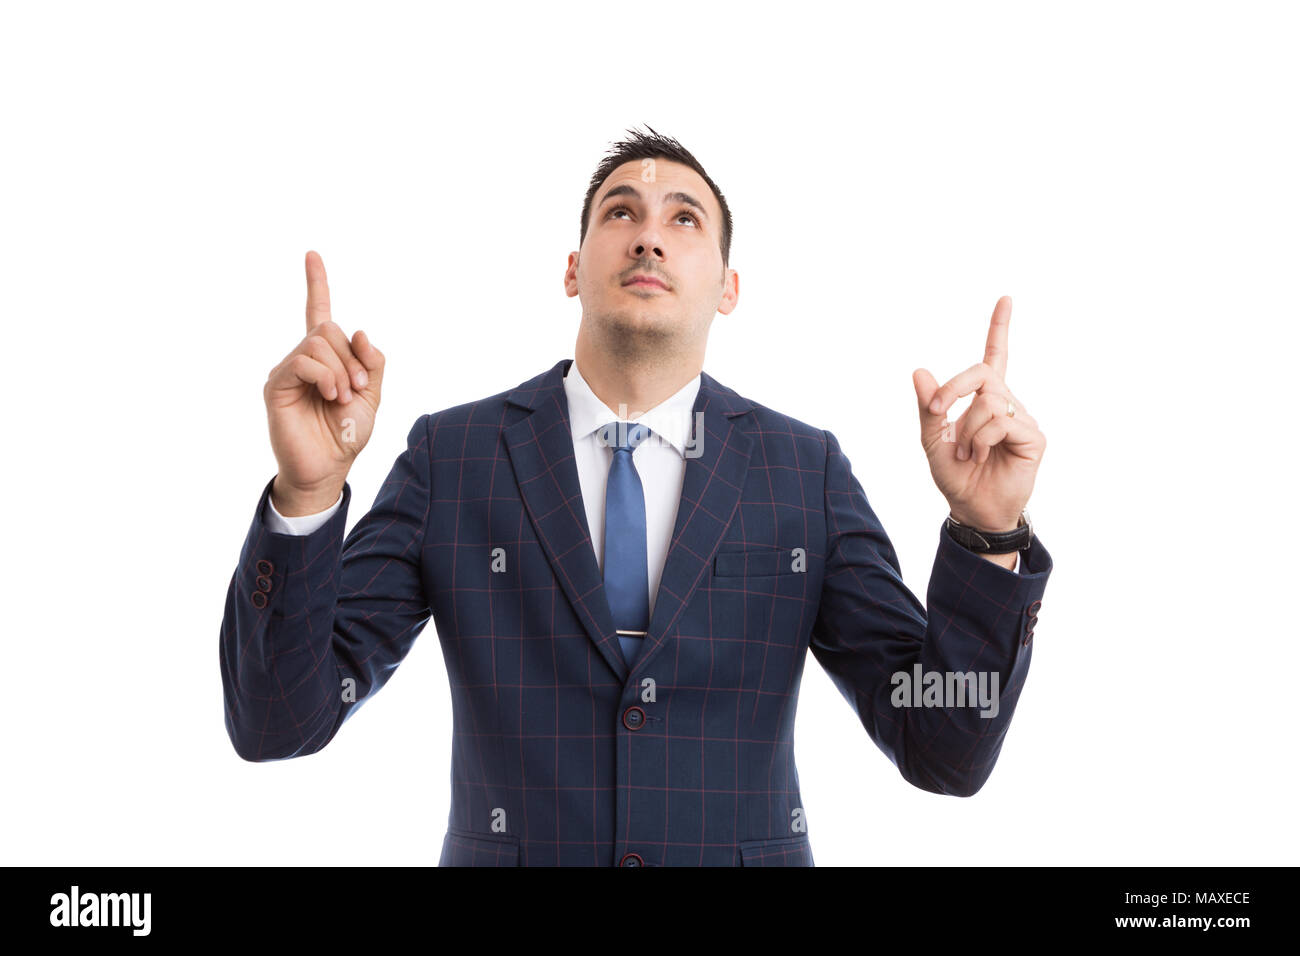 young handsome salesman or businessman pointing with both index